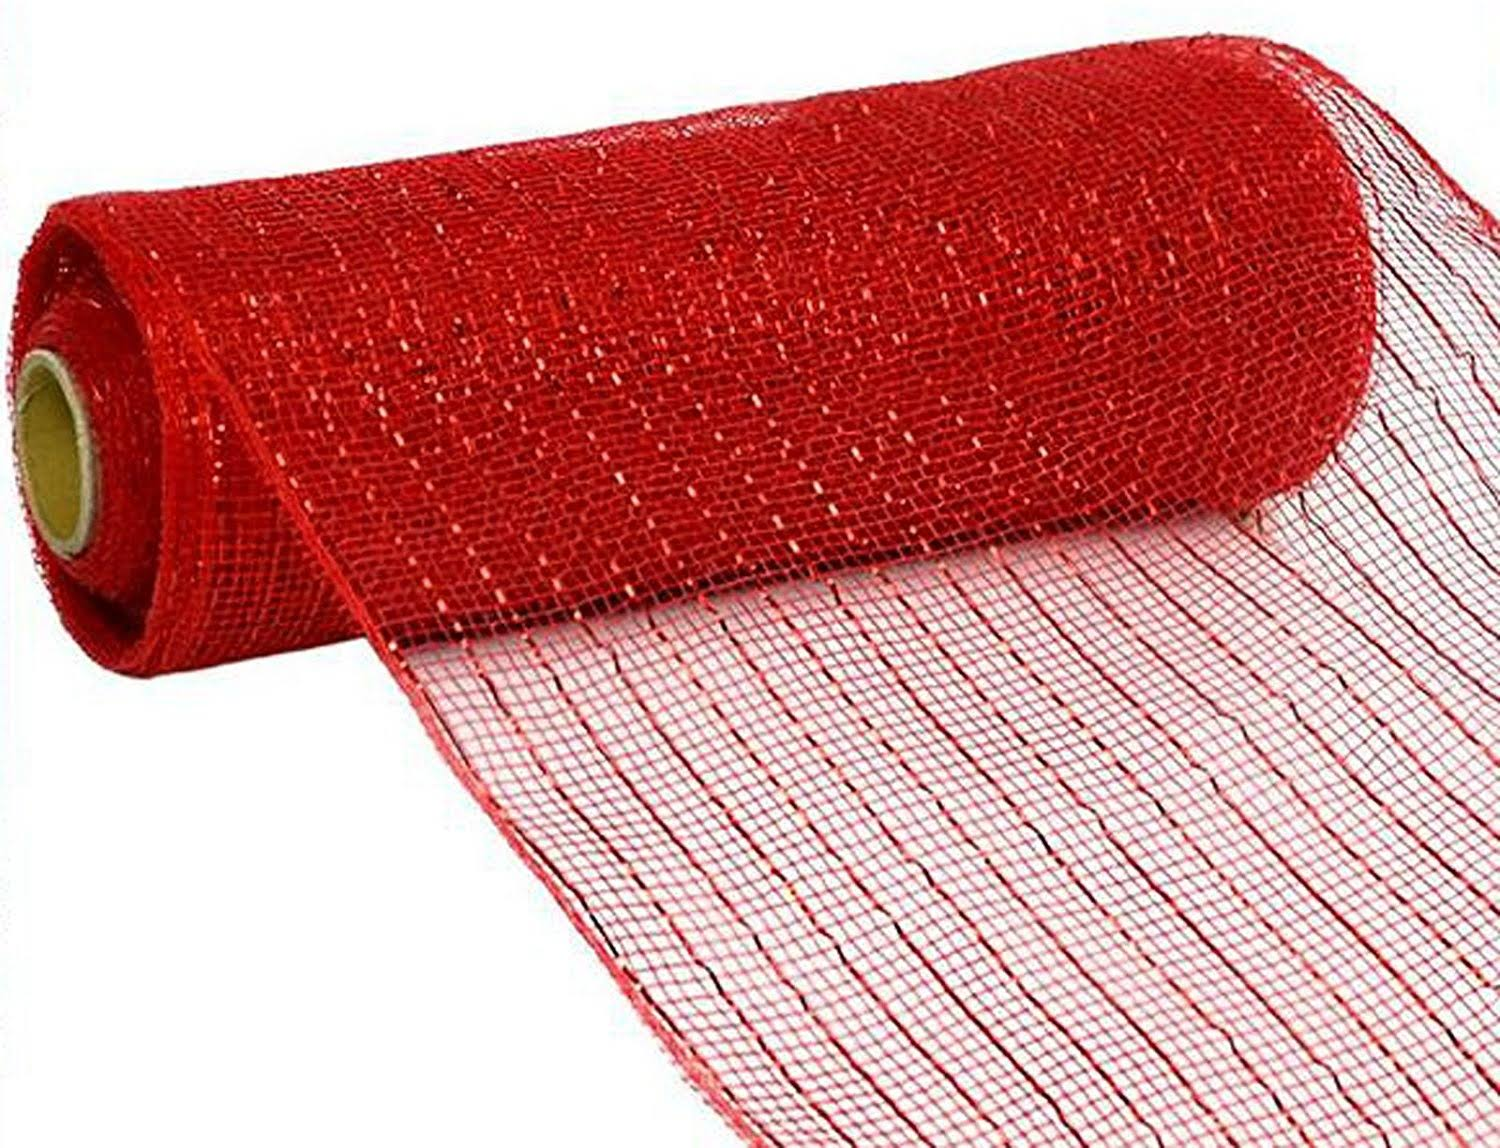 "Deco Poly Mesh Ribbon - Metallic Red/Red Foil, 10""x30'"